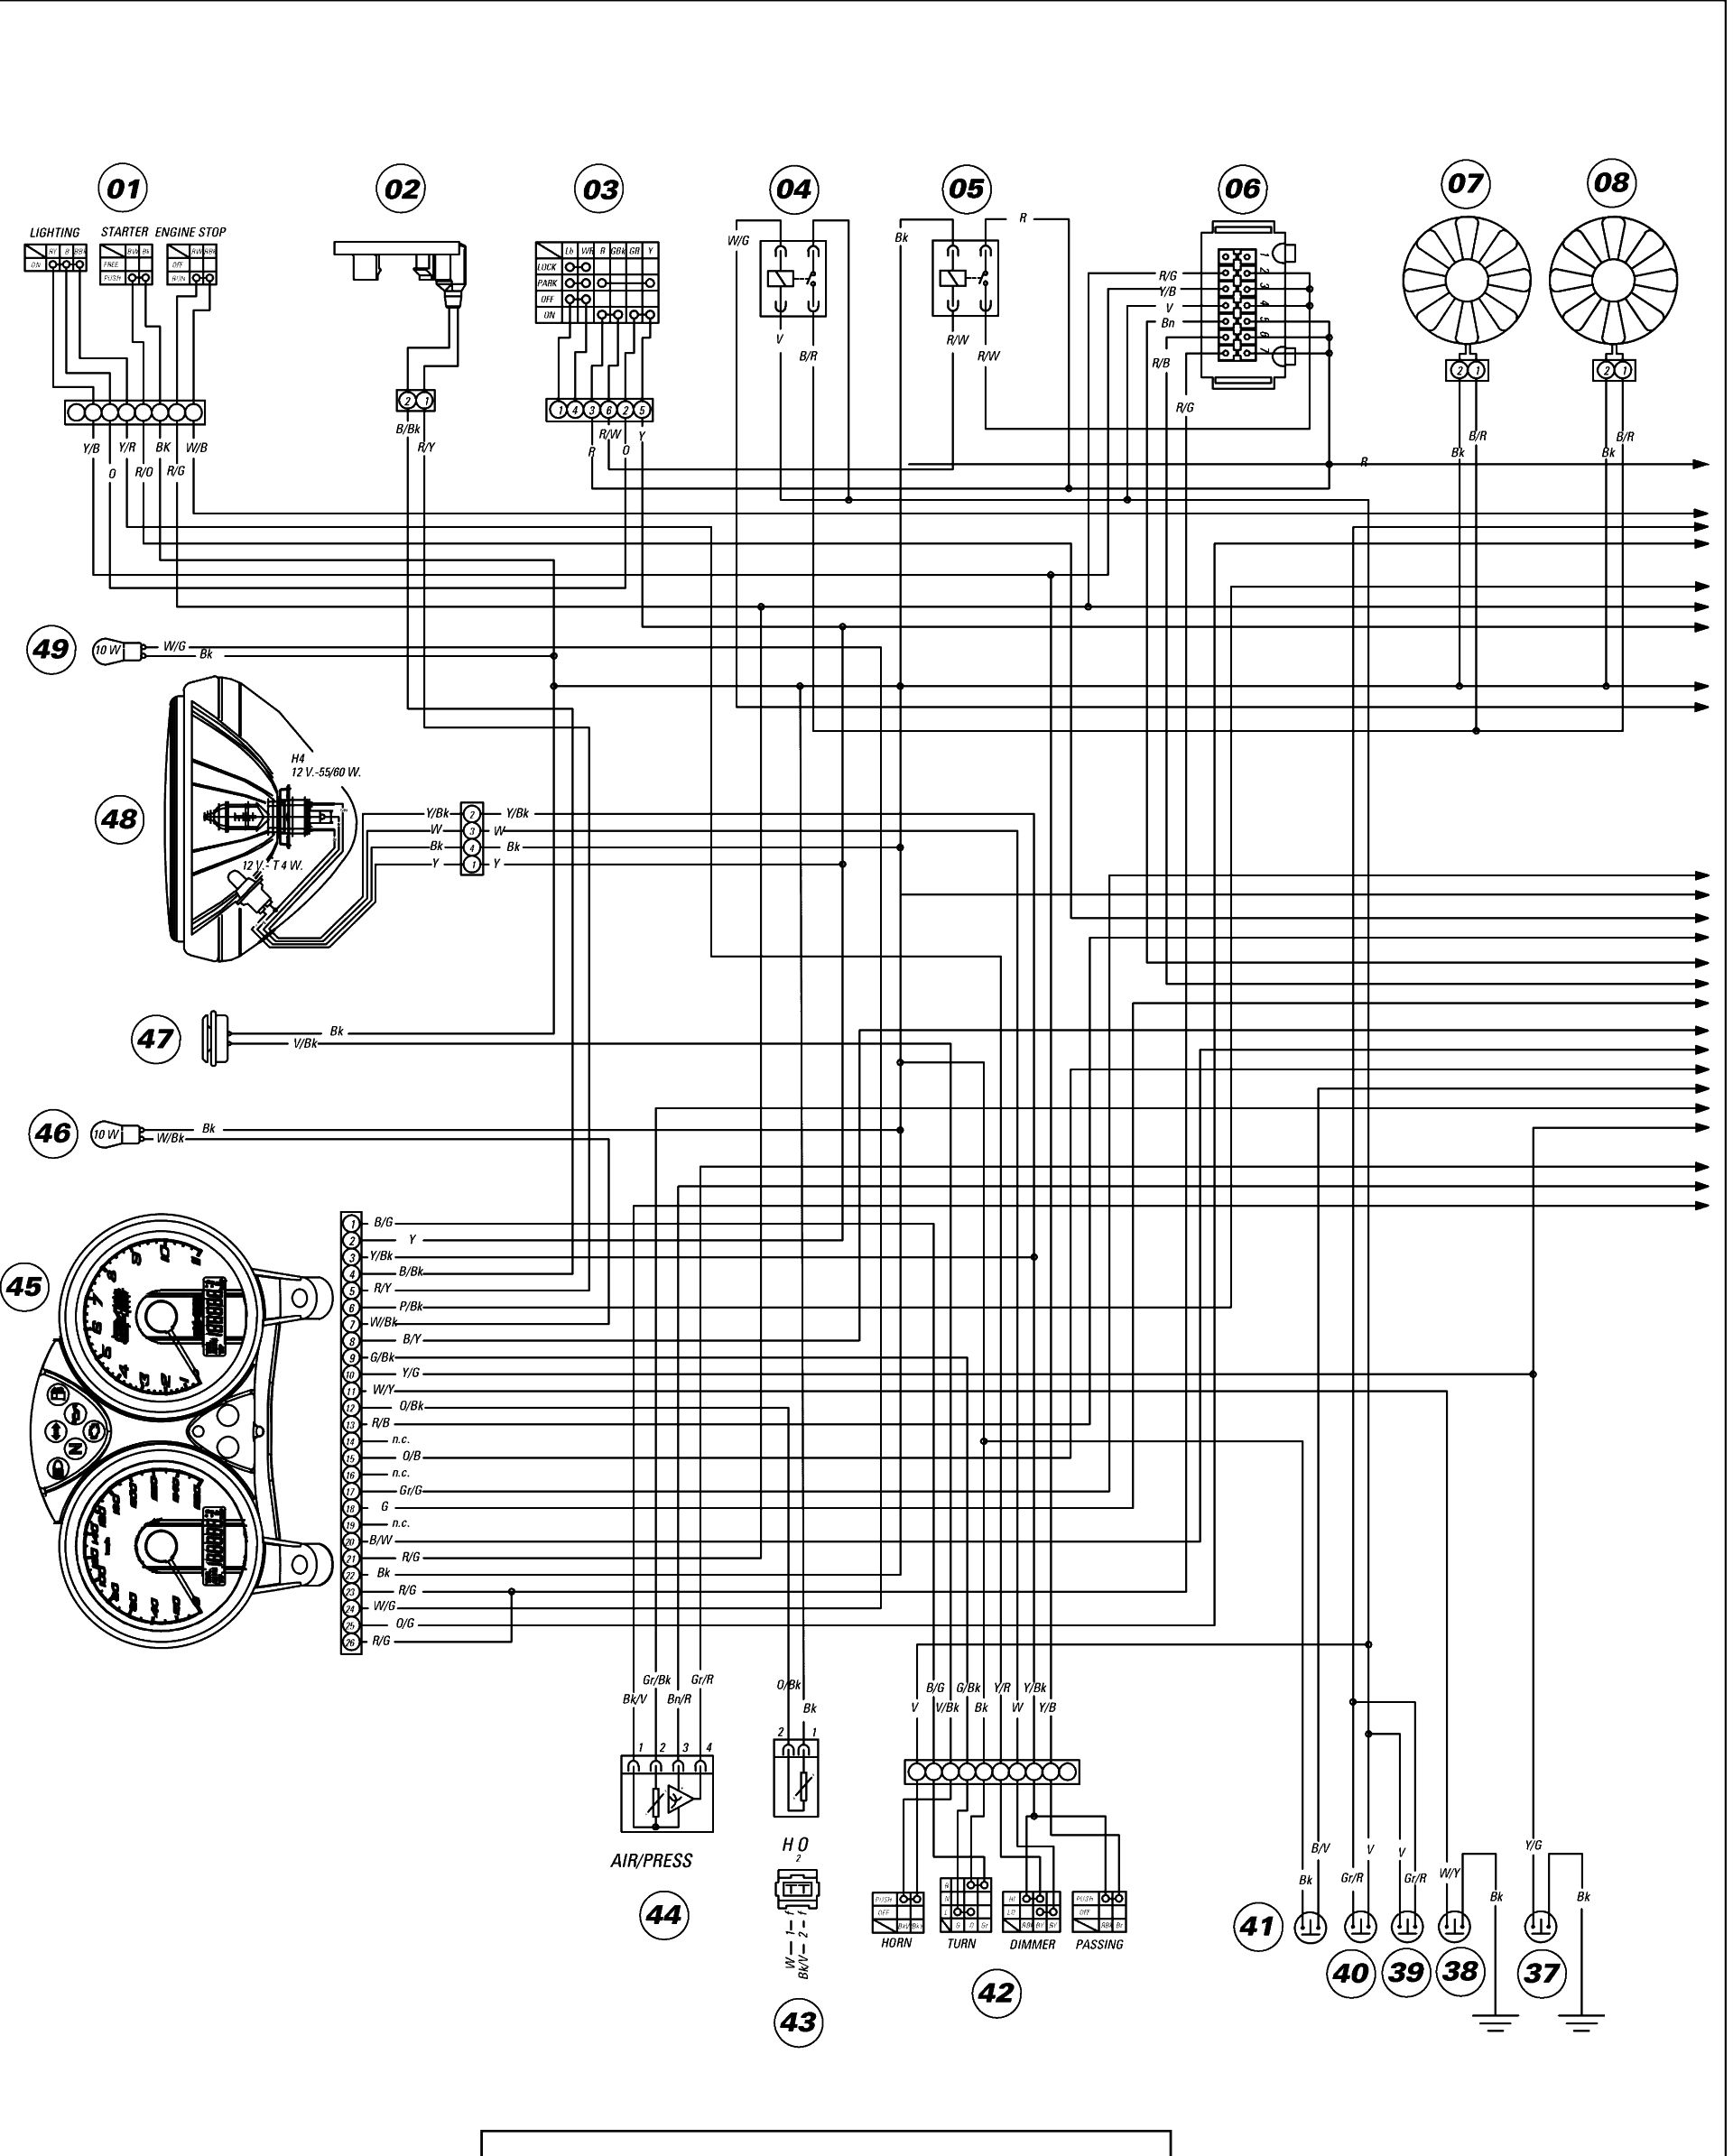 Ducati 848 Wiring Diagram Electrical Schematic - Wiring Diagrams on